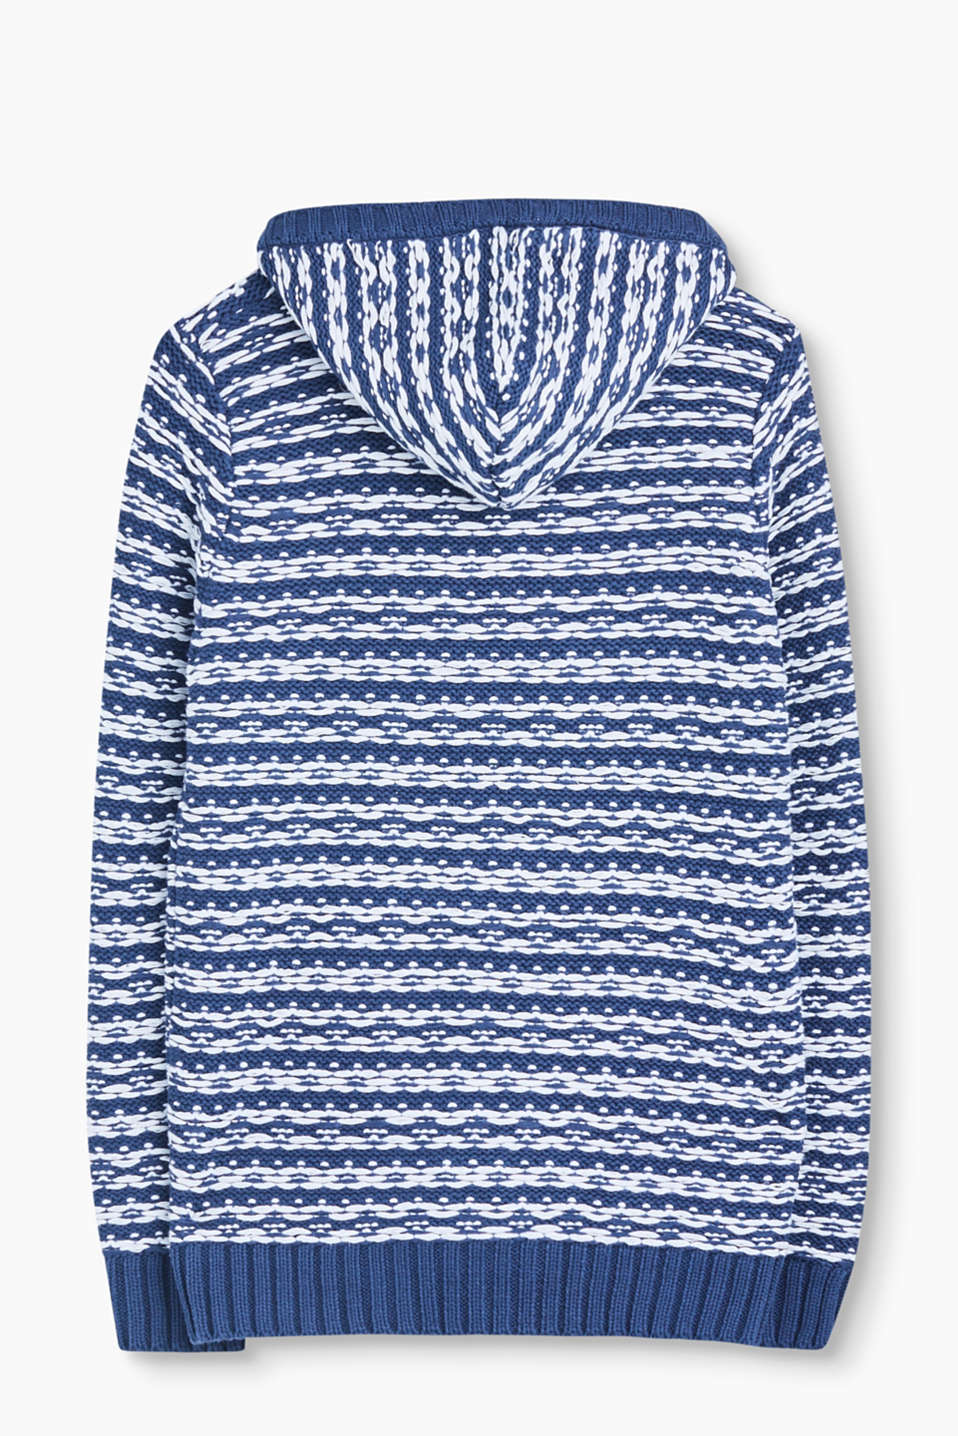 Hooded cardigan in blended cotton